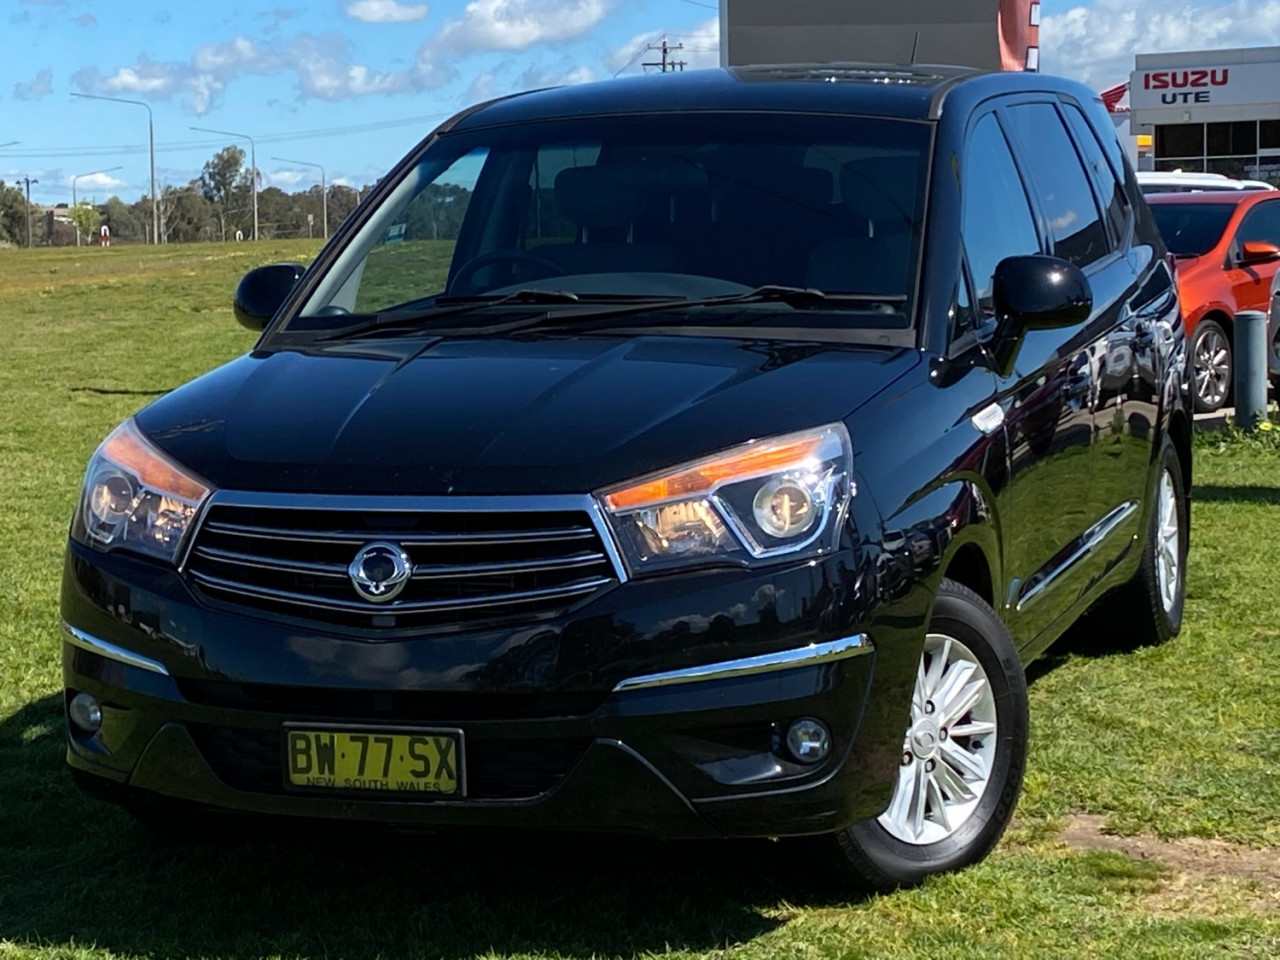 2013 SsangYong Stavic A100 MY13 Wagon Image 1